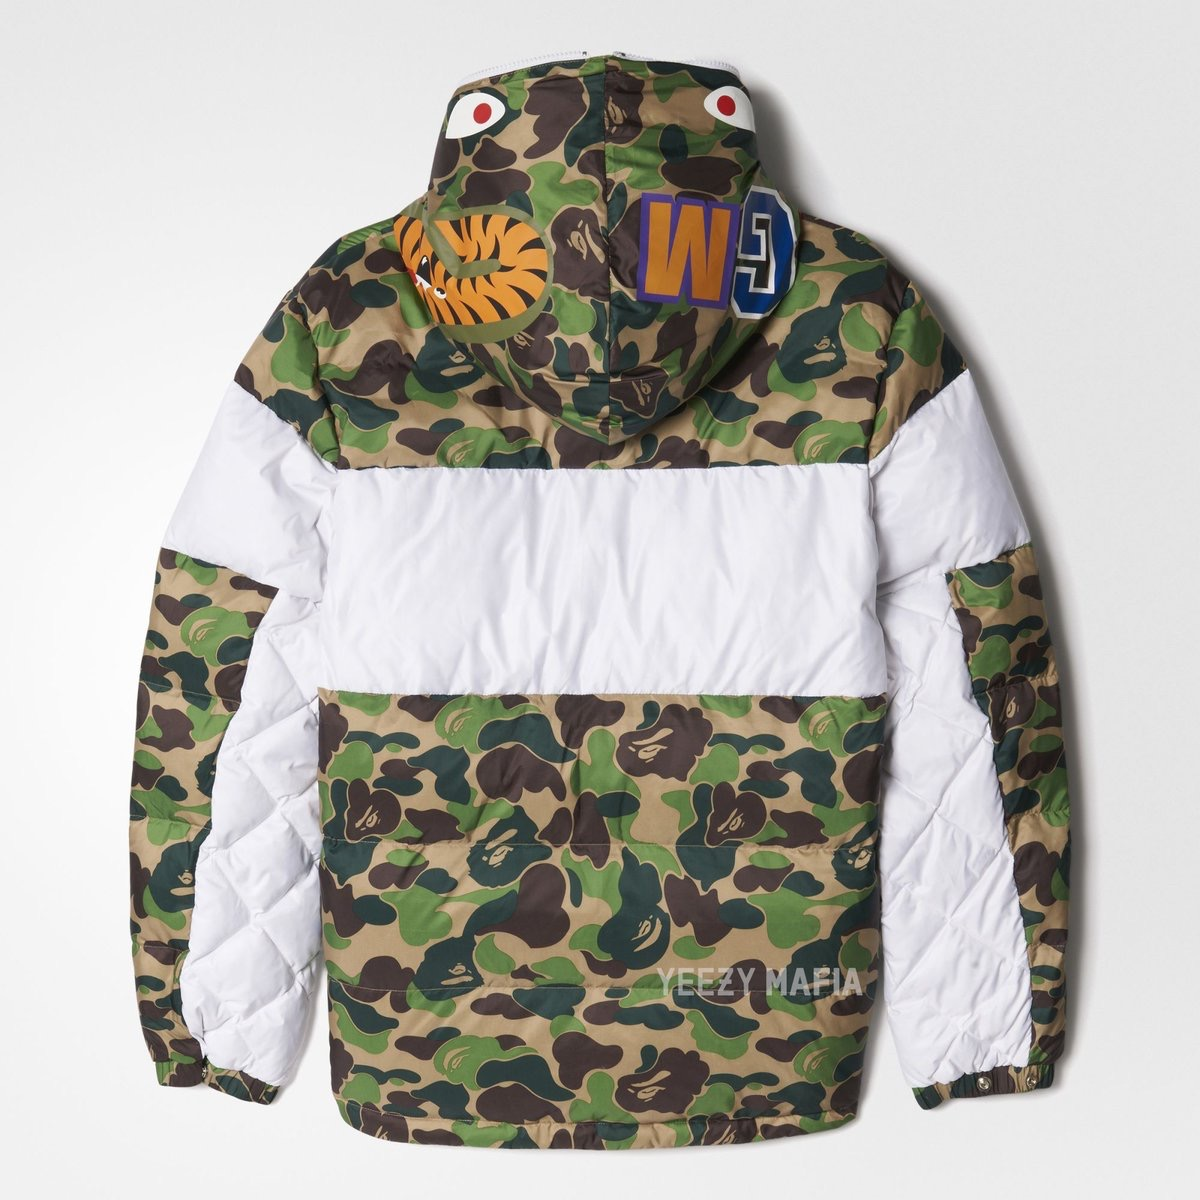 adidas-originals-bape-a-bathing-ape-2016aw-collaboration-release-20161126